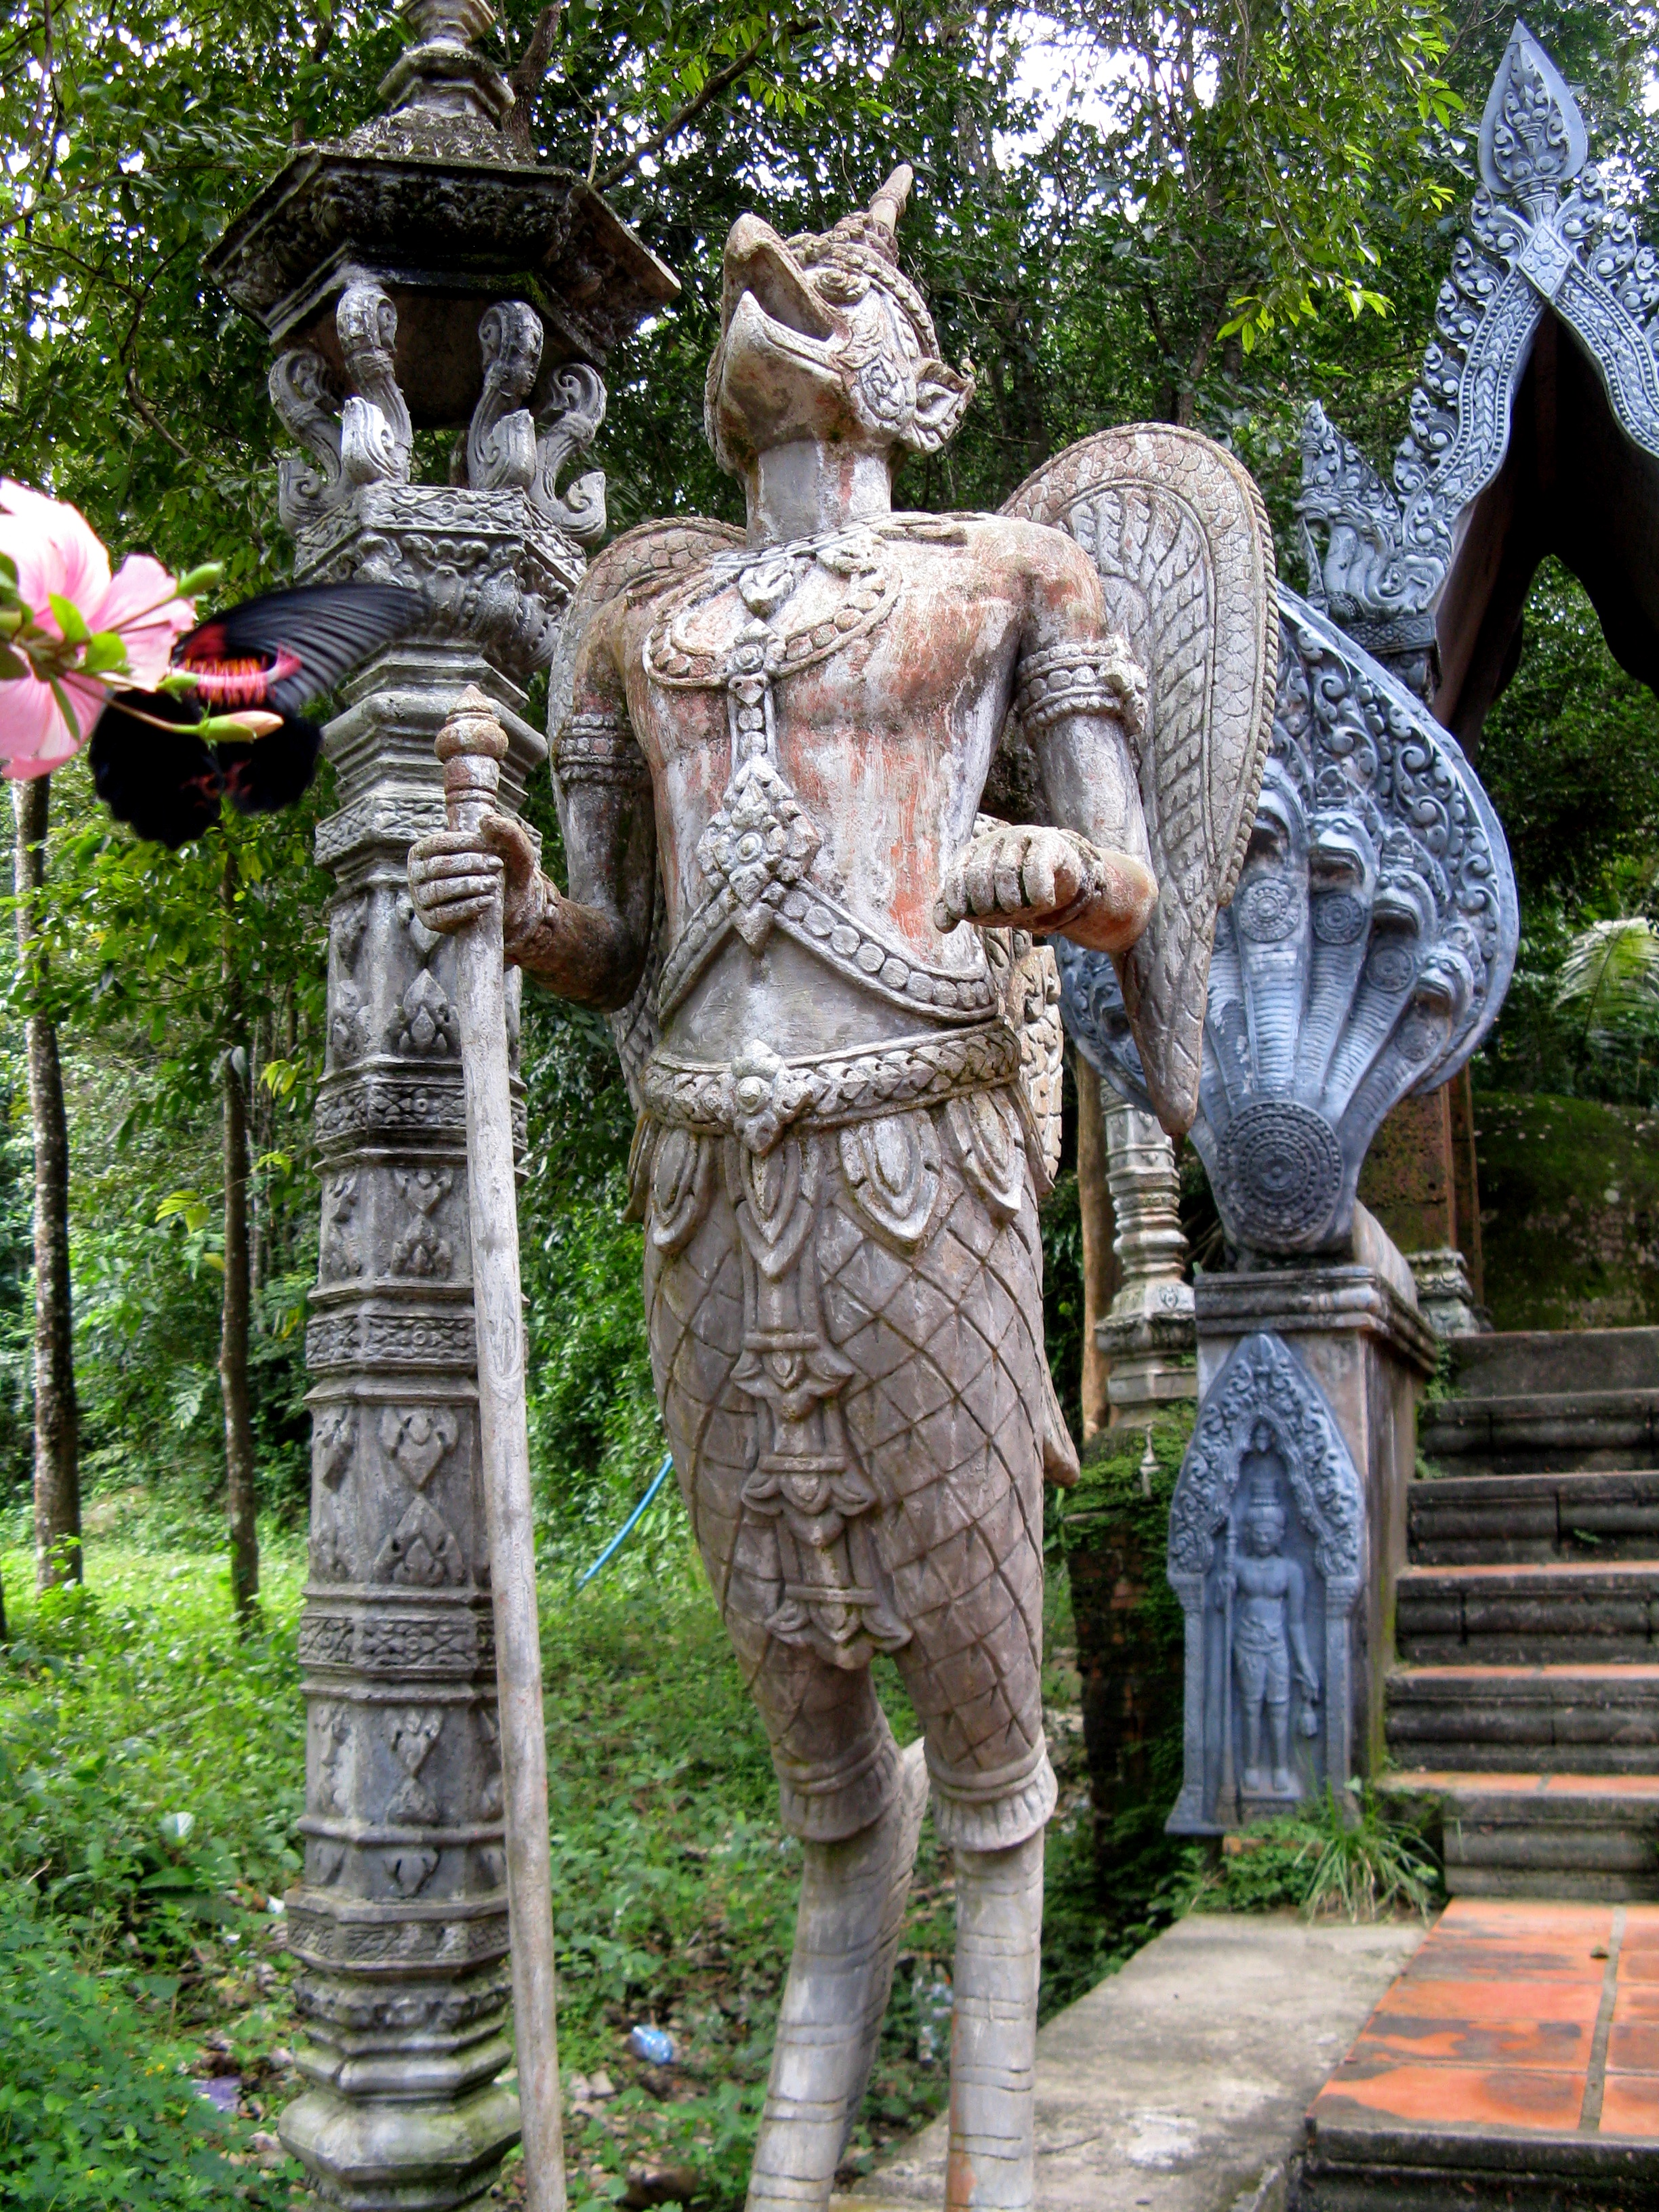 A kinnara, a mythical bird-man of Thai mythology